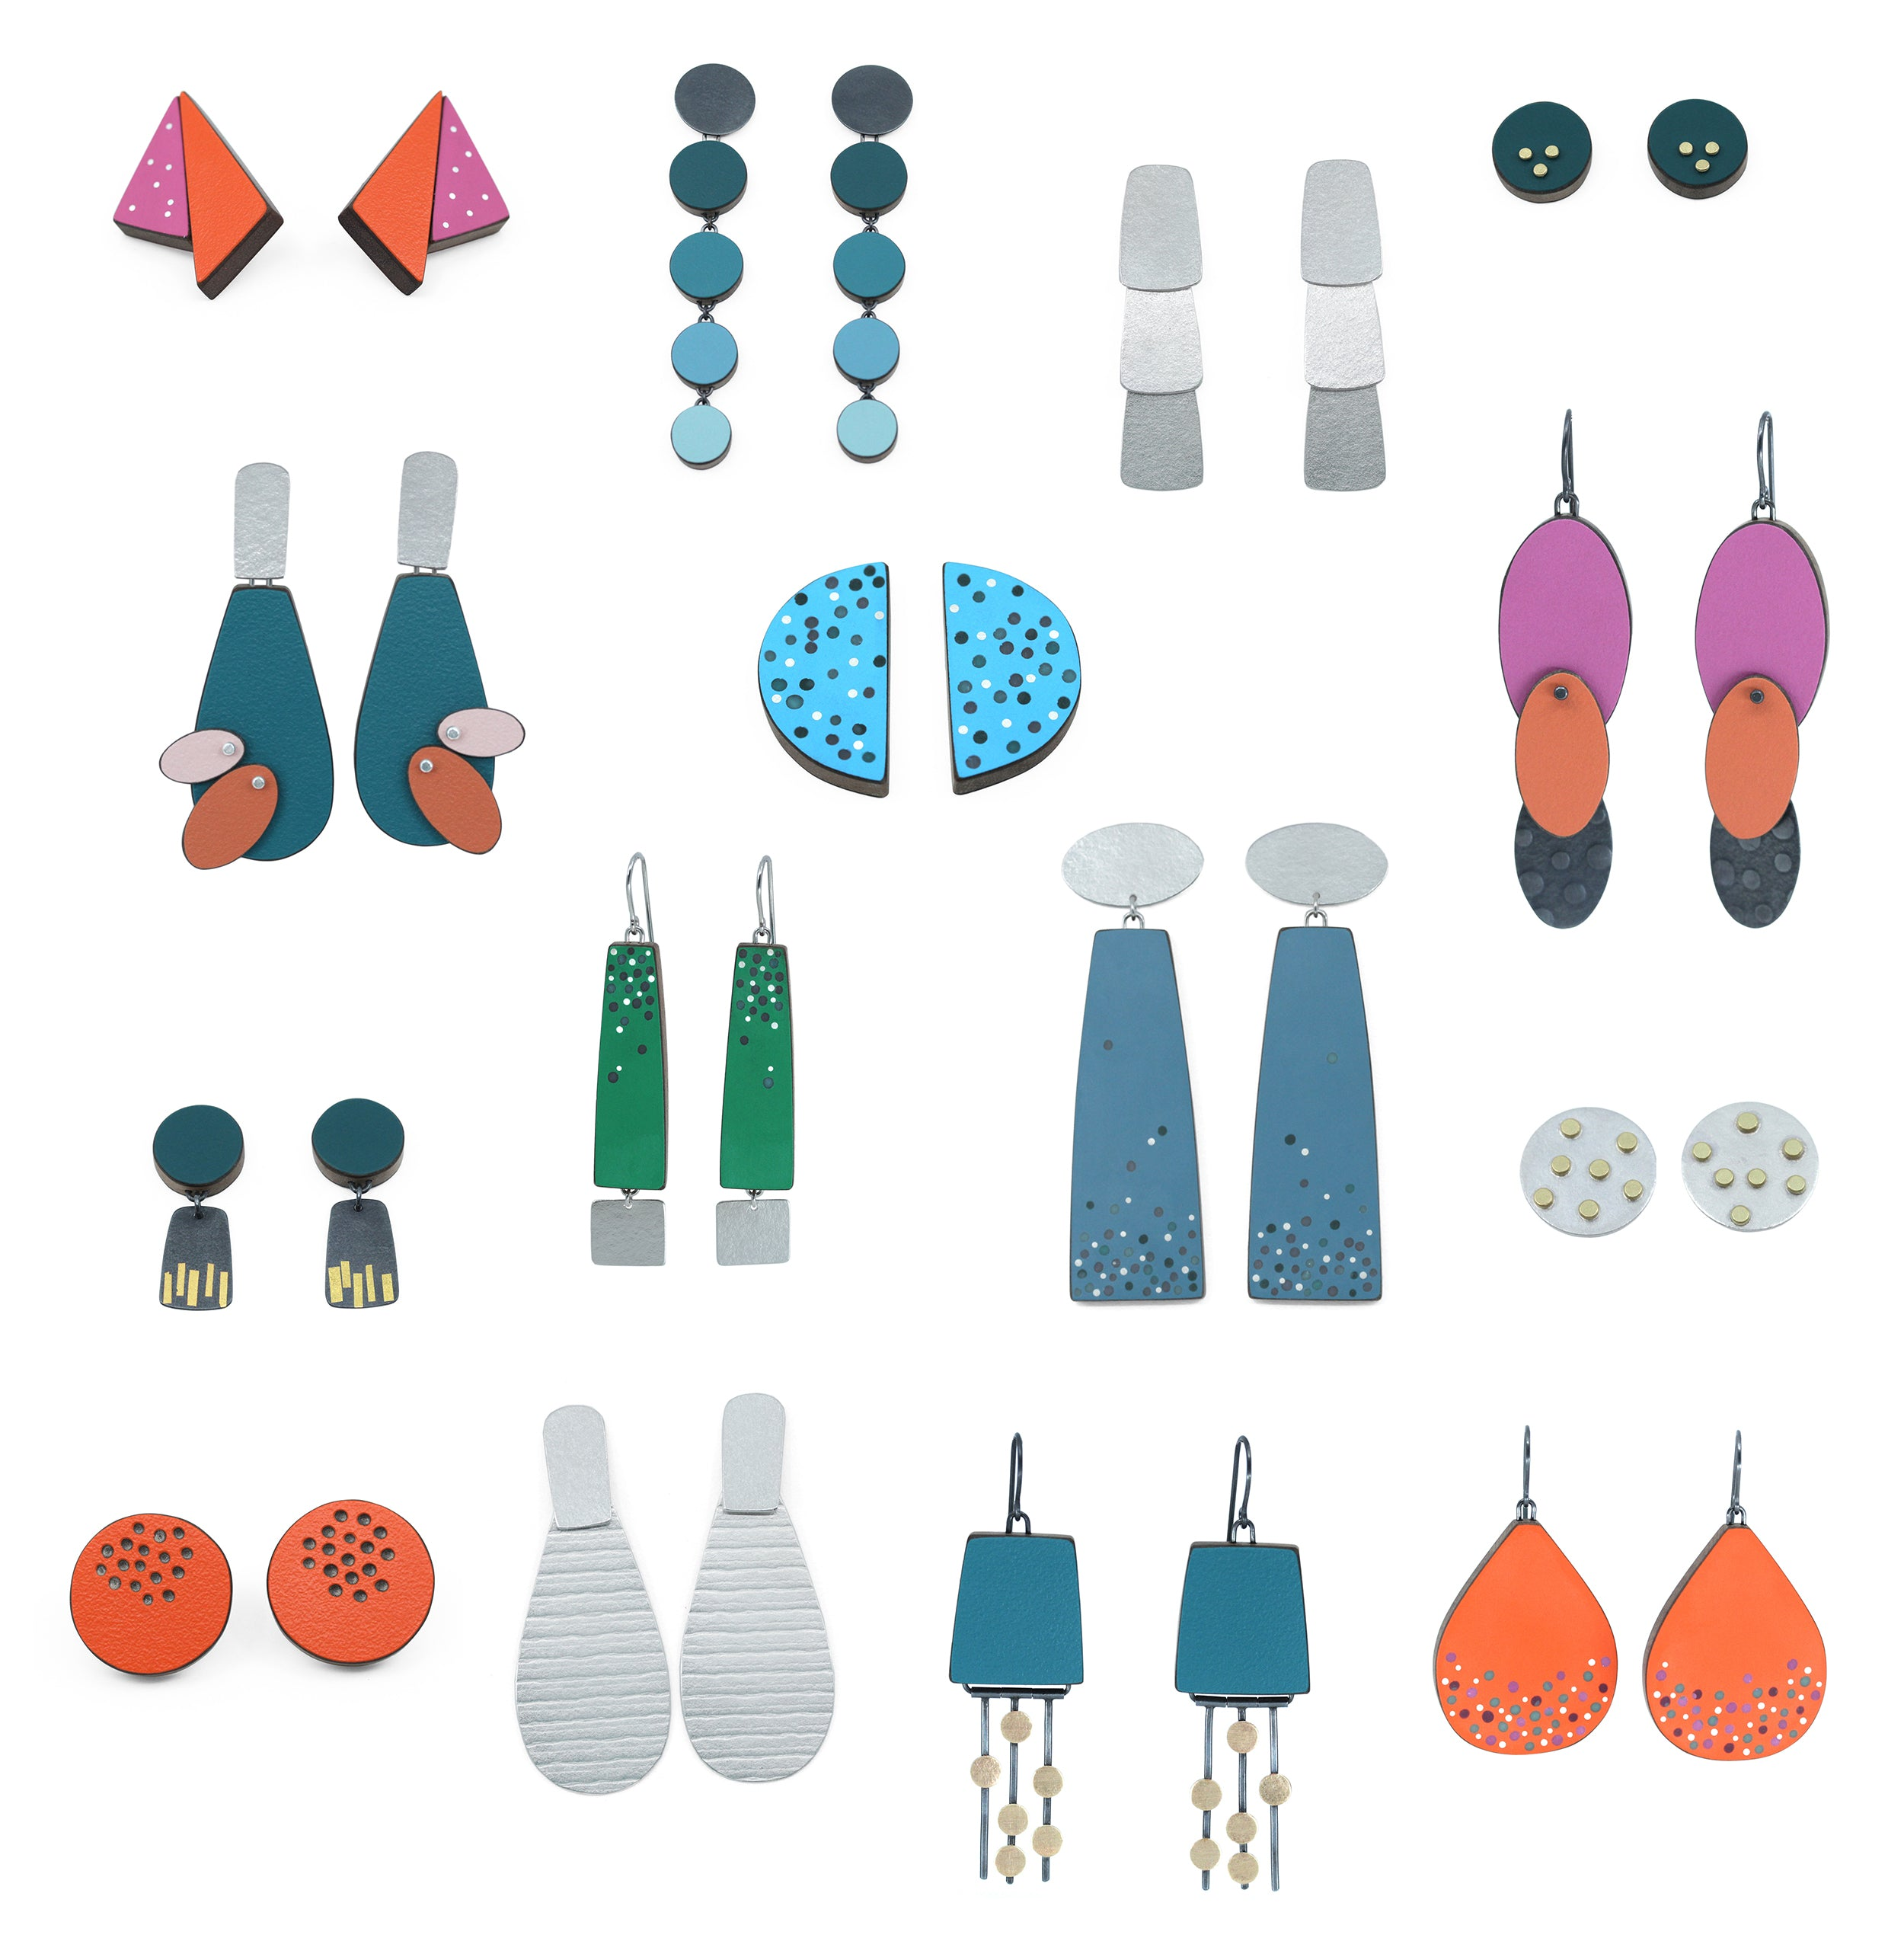 All fifteen pairs of earrings